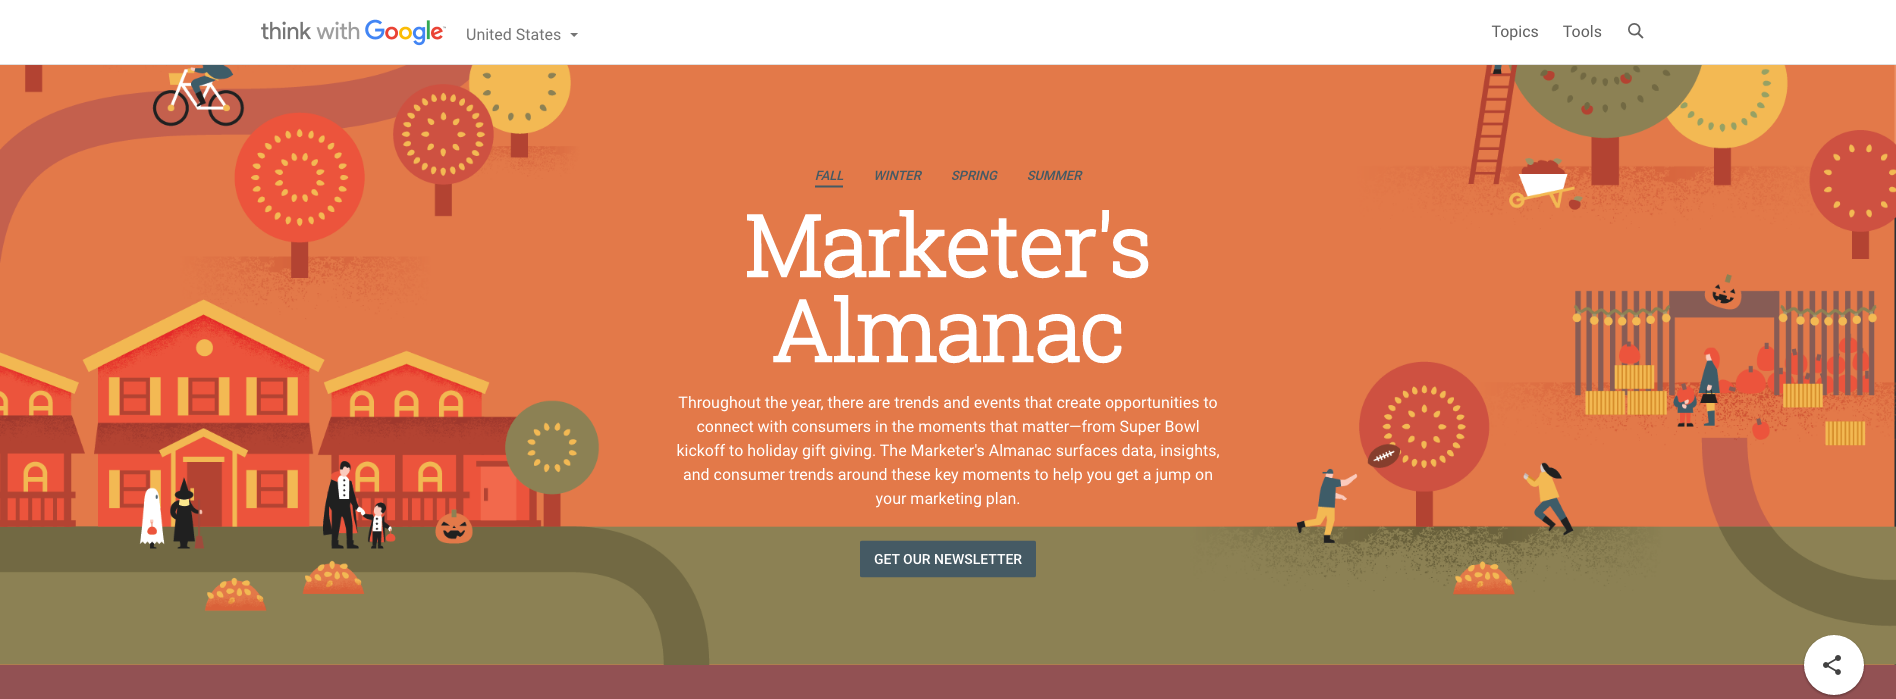 Marketer_s_Almanac_Think_with_Google.png